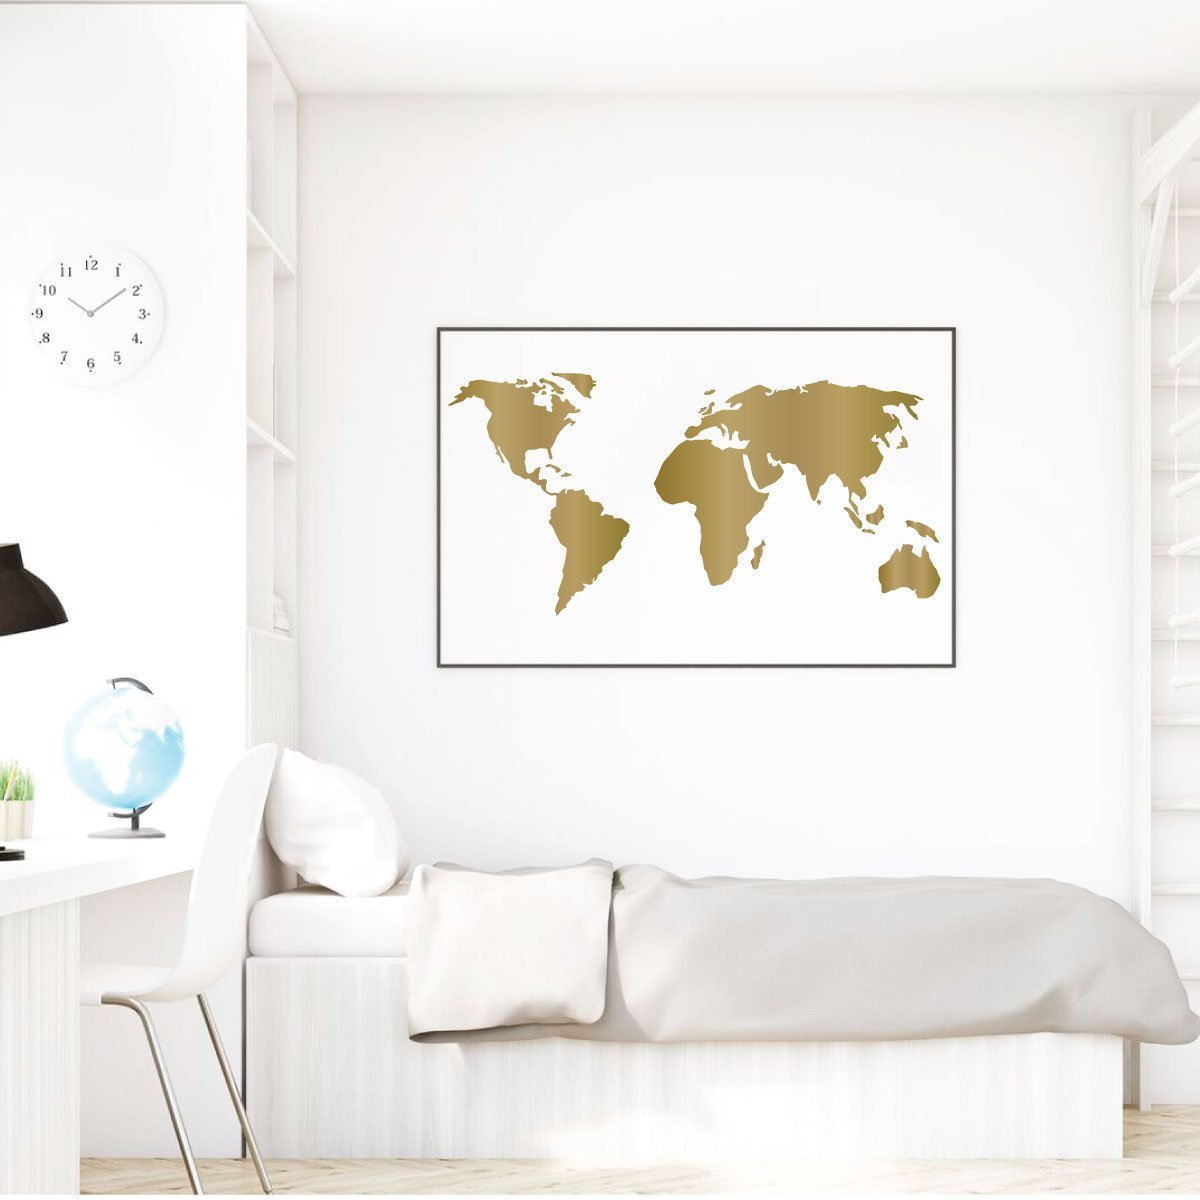 World Map Decorations World Map Vinyl Wall Art Perfect Decoration For Home Or Classroom